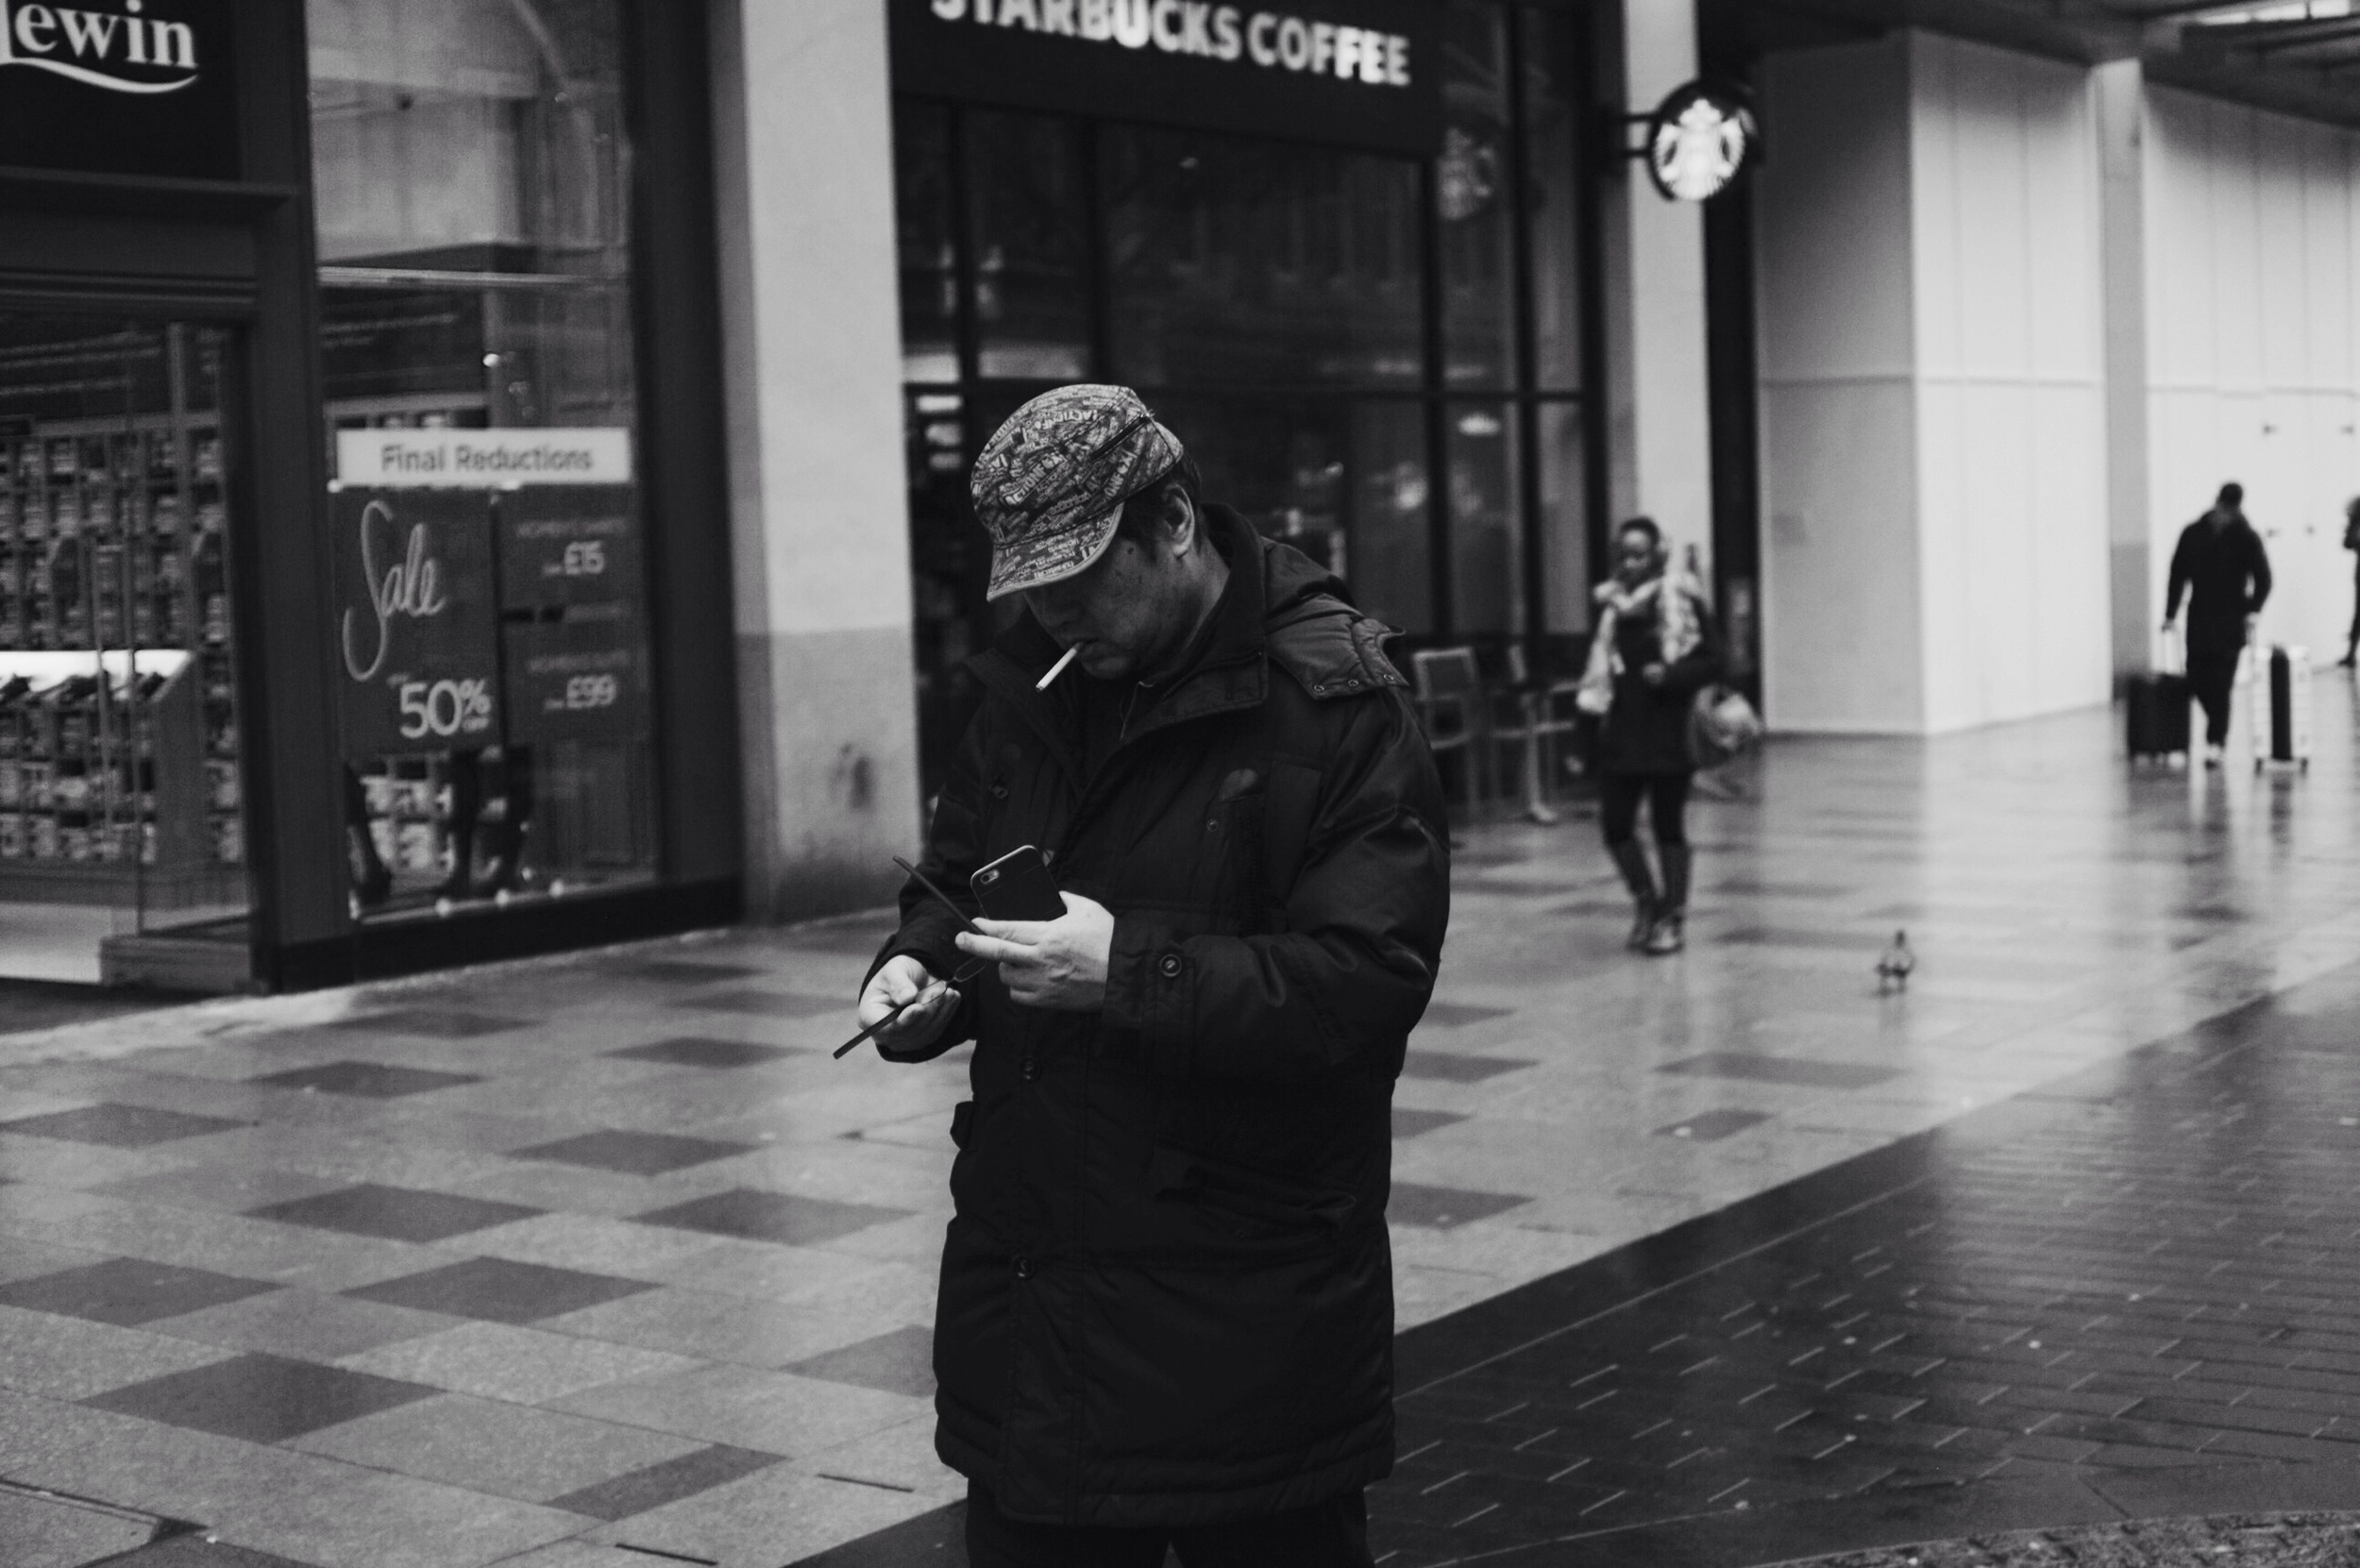 The Fuji X100+TCL Street Photography - Edited in VSCOcam